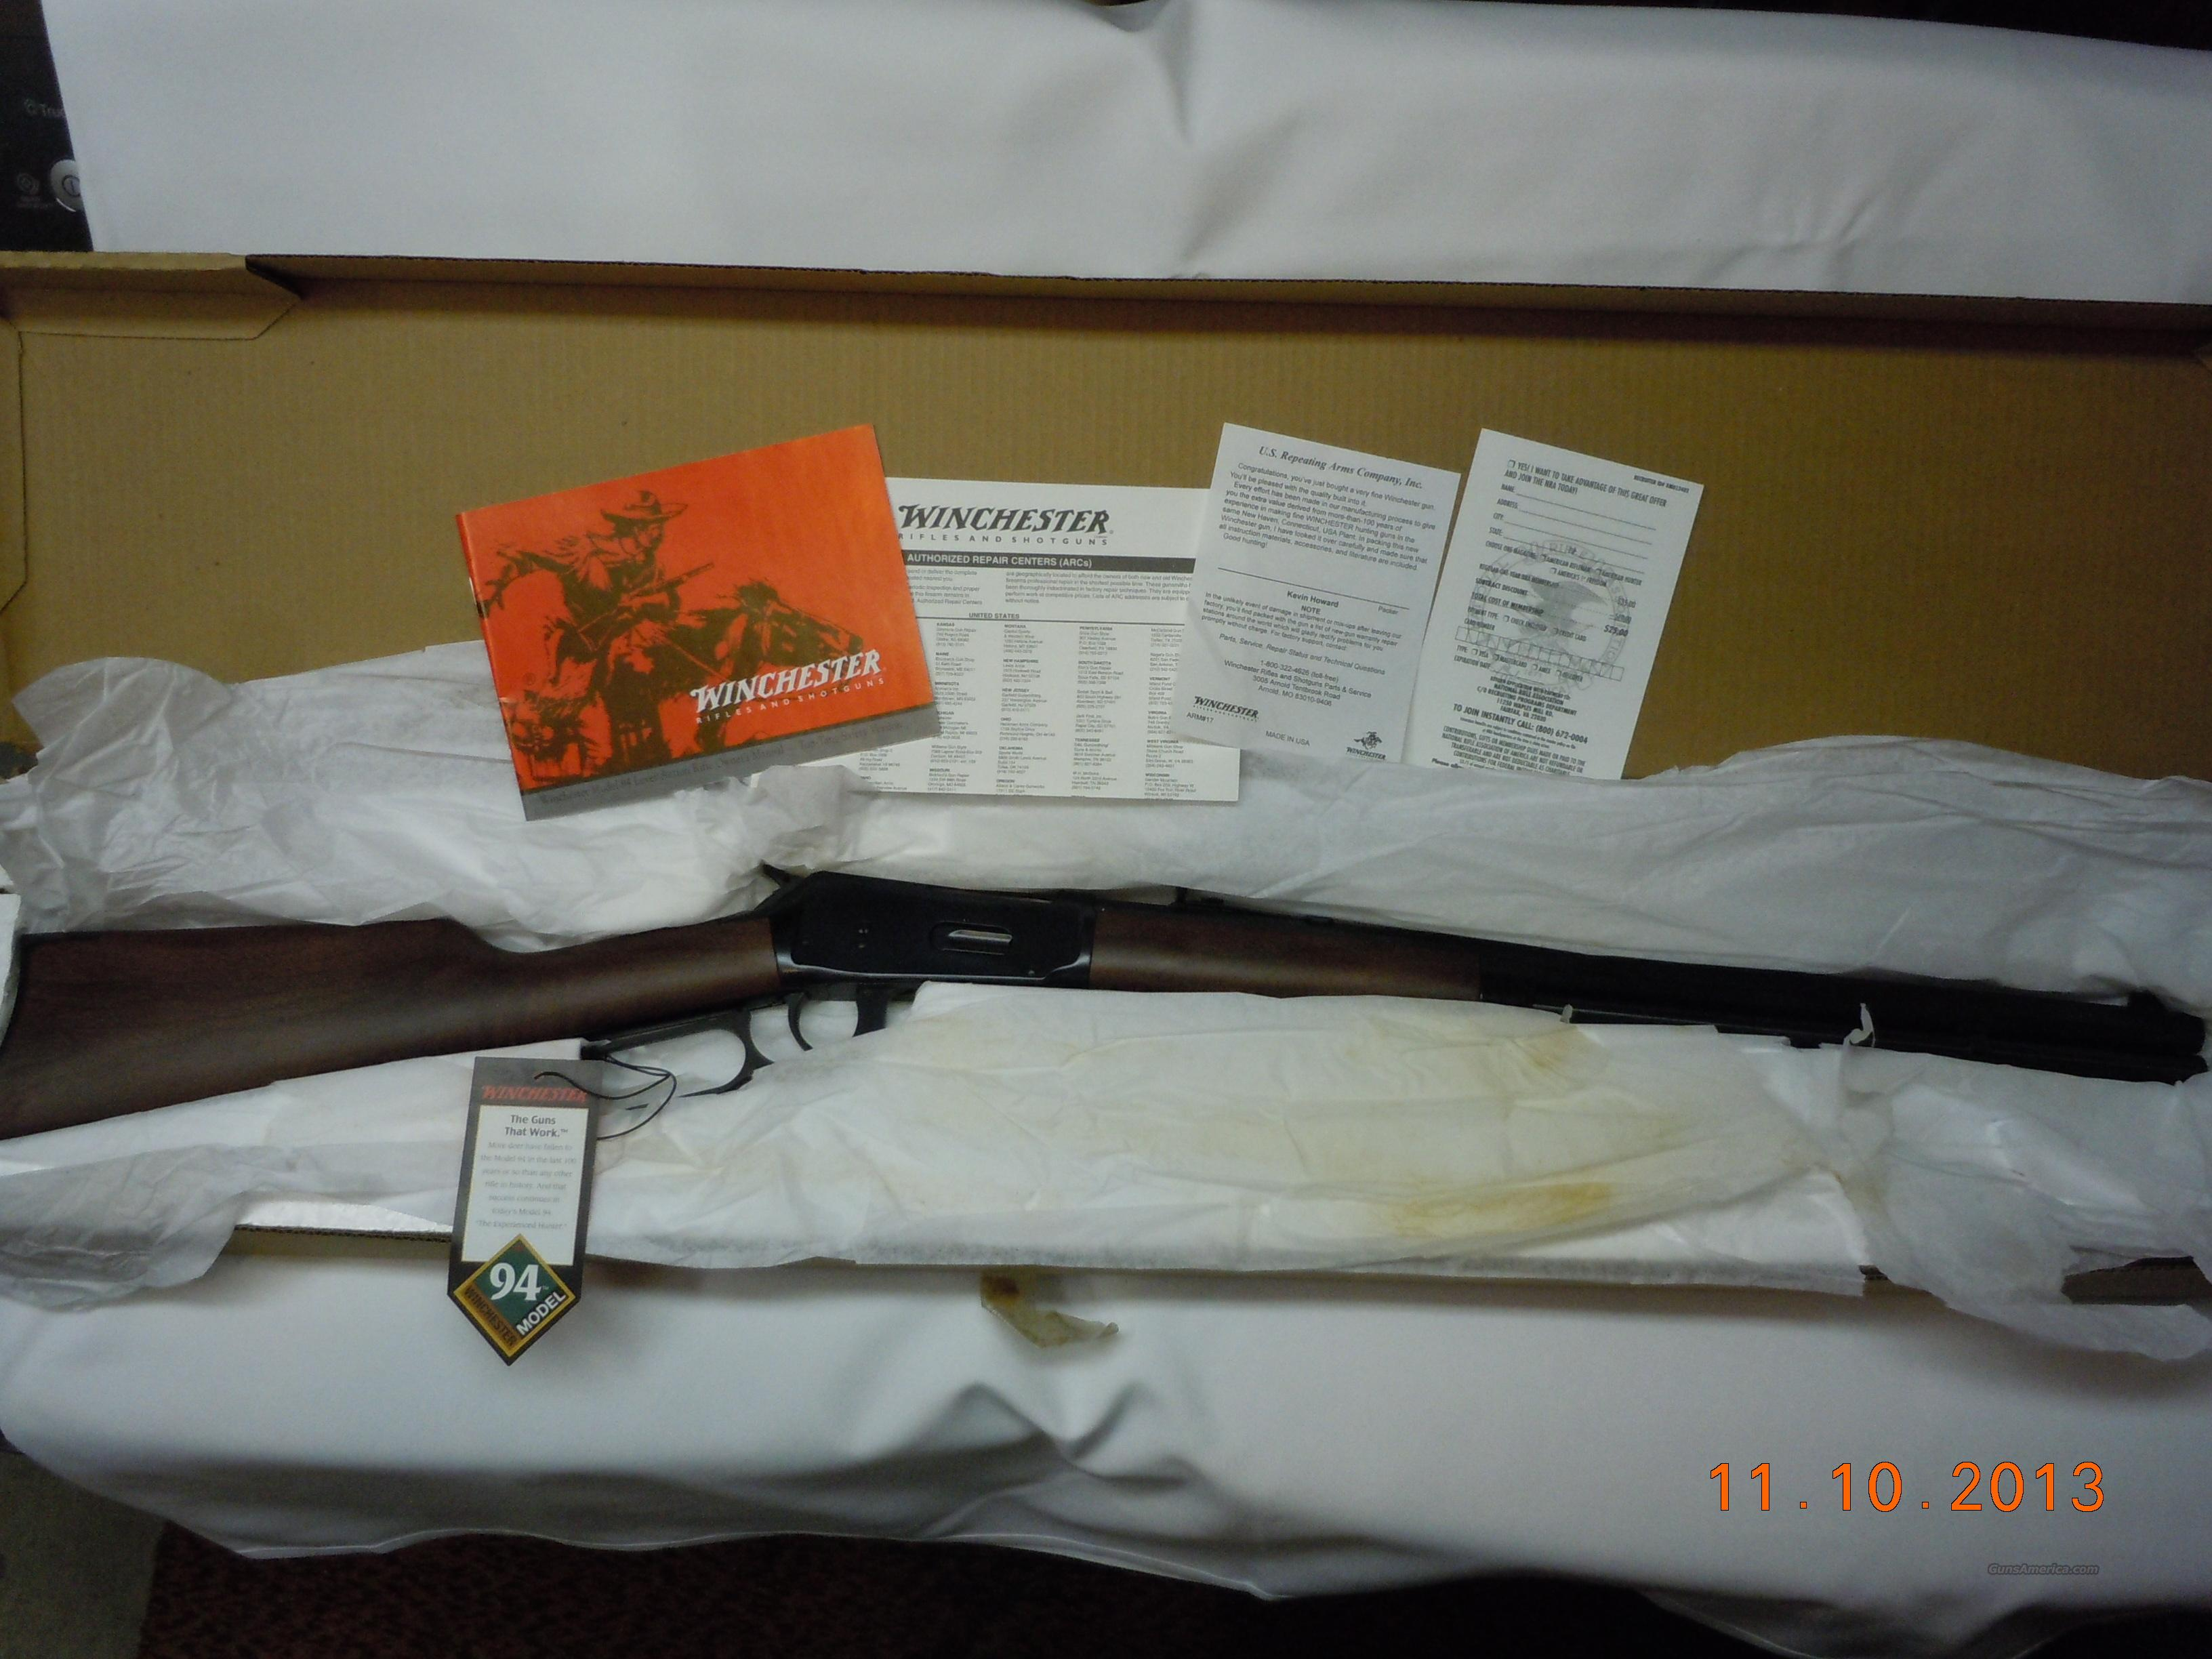 Winchester model 94 - Trails End  Guns > Rifles > Winchester Rifles - Modern Lever > Model 94 > Post-64